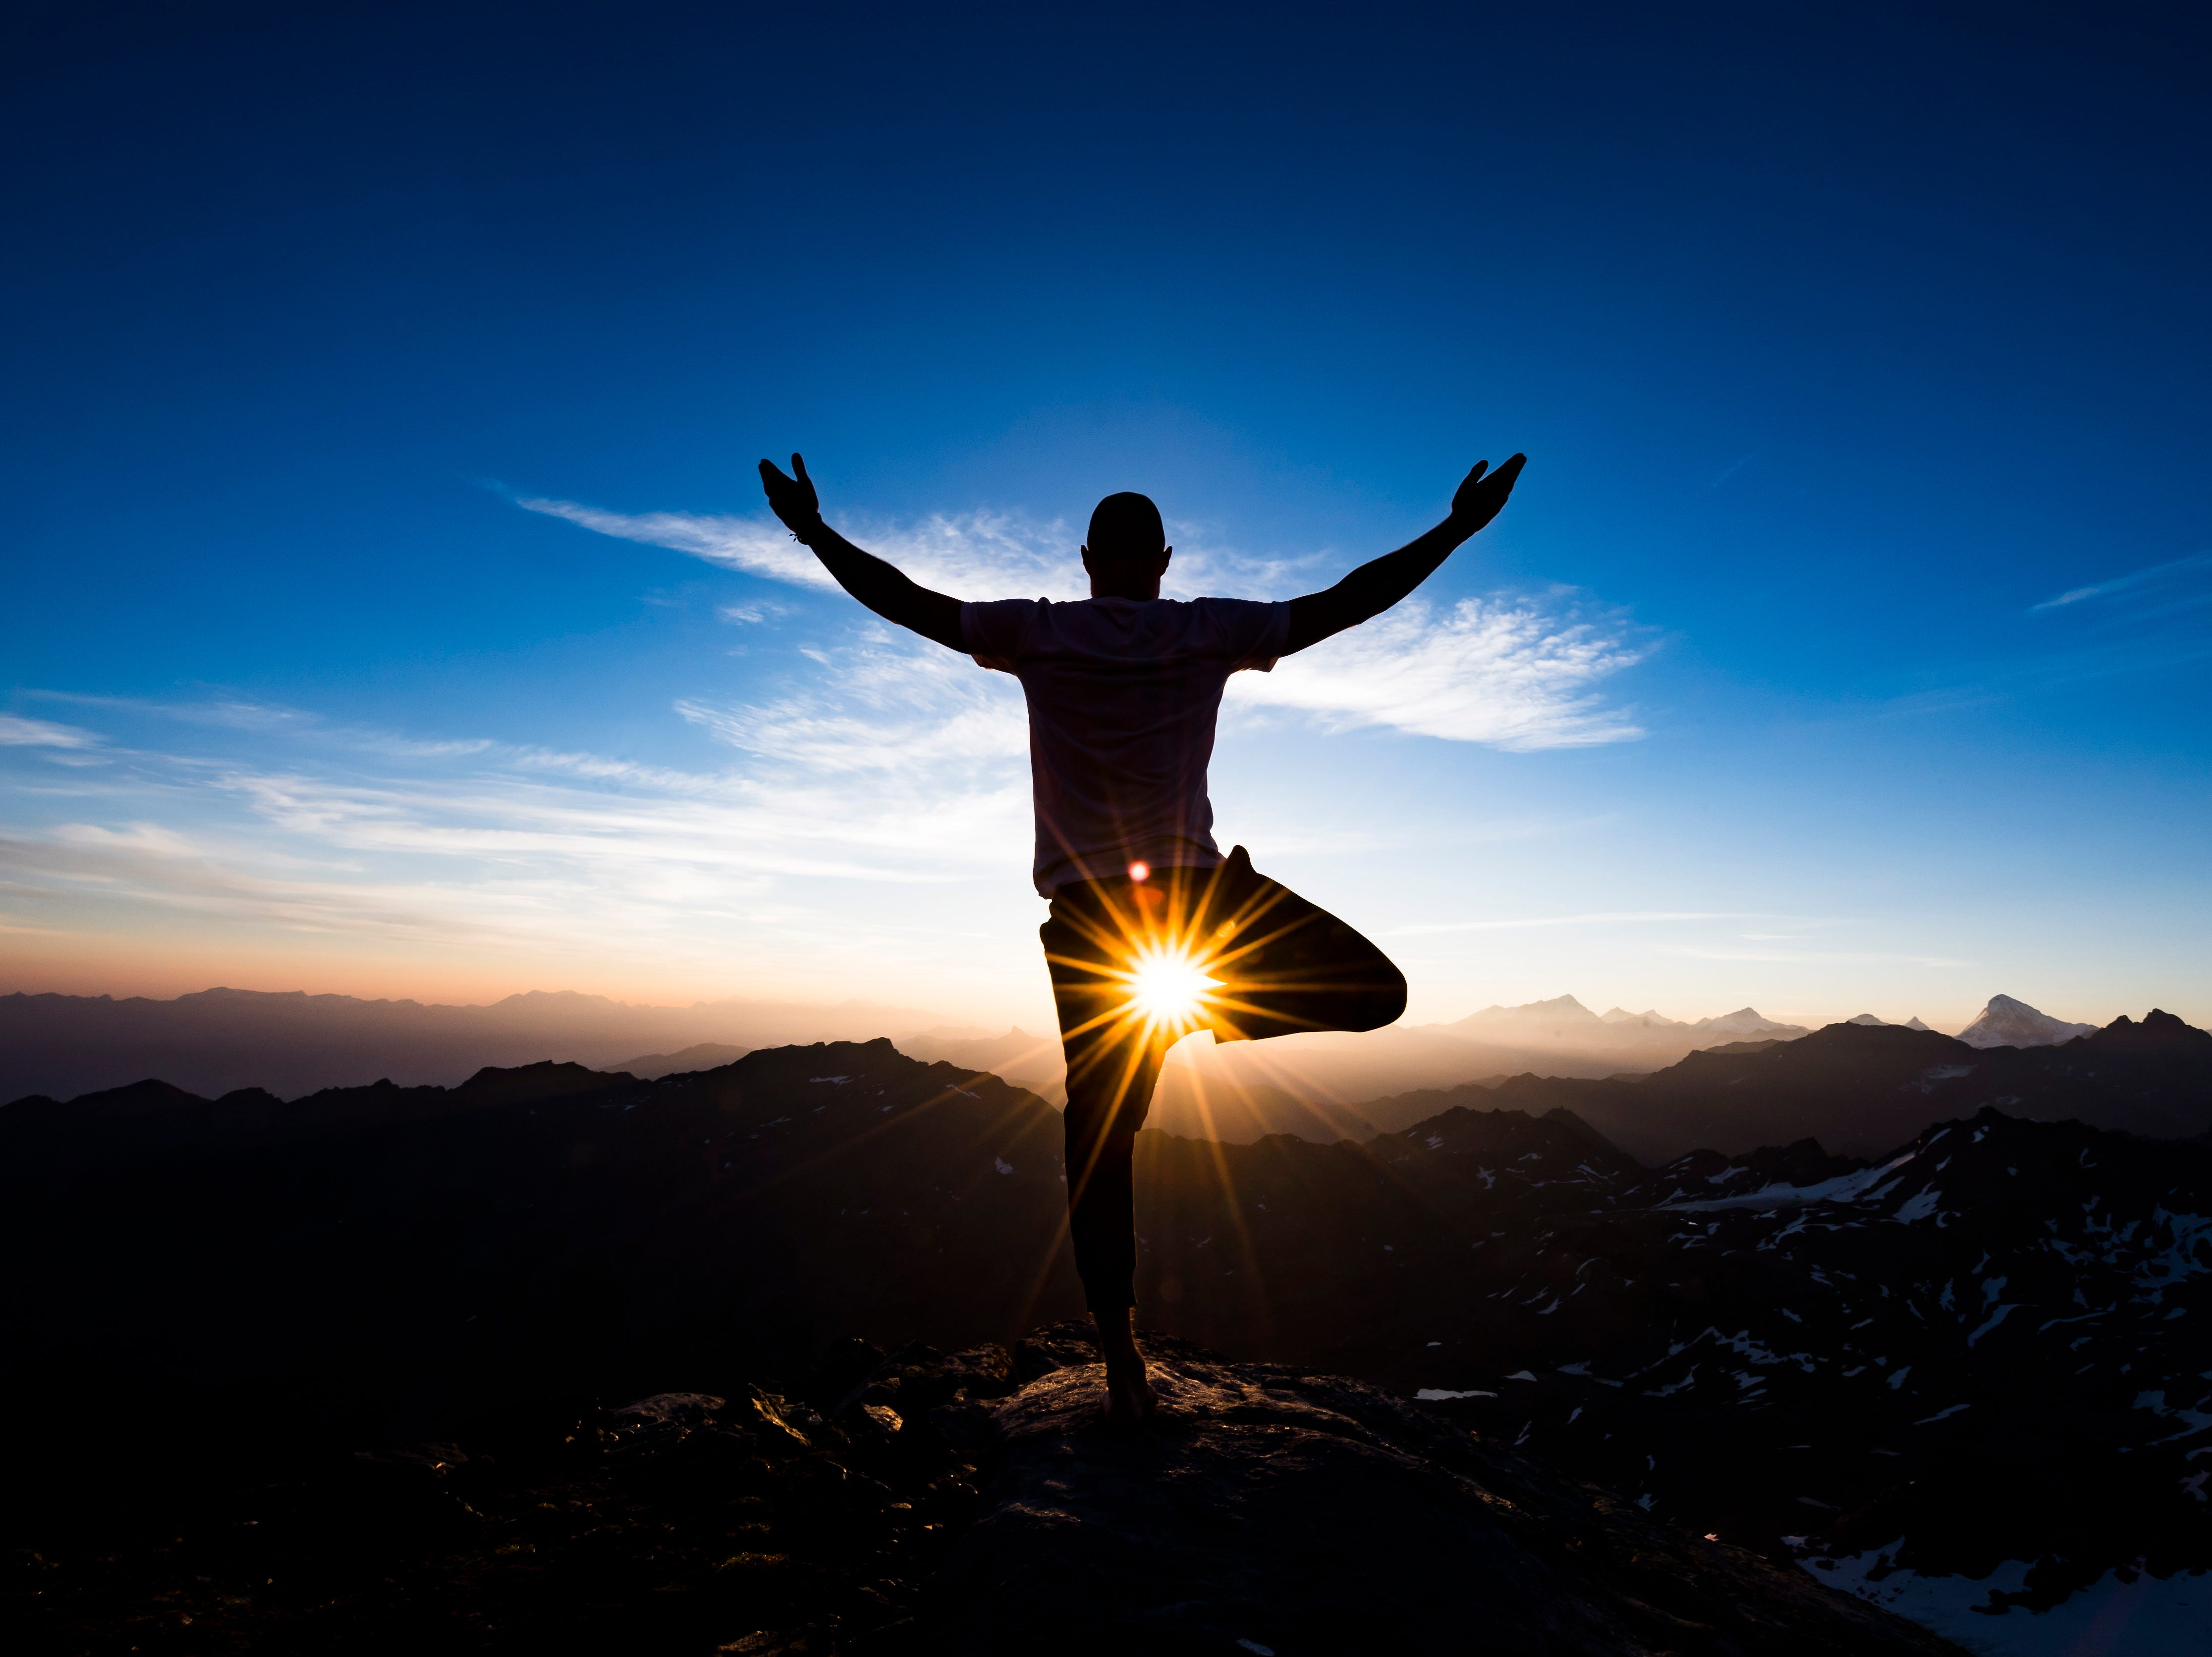 Aug. 2, 2018: Emilien Badoux, swiss freerider and Yoga teacher practices Yoga at sunrise on the top of Mont Fort peak surrounded by Swiss Alps, between Nendaz and Verbier, Switzerland.